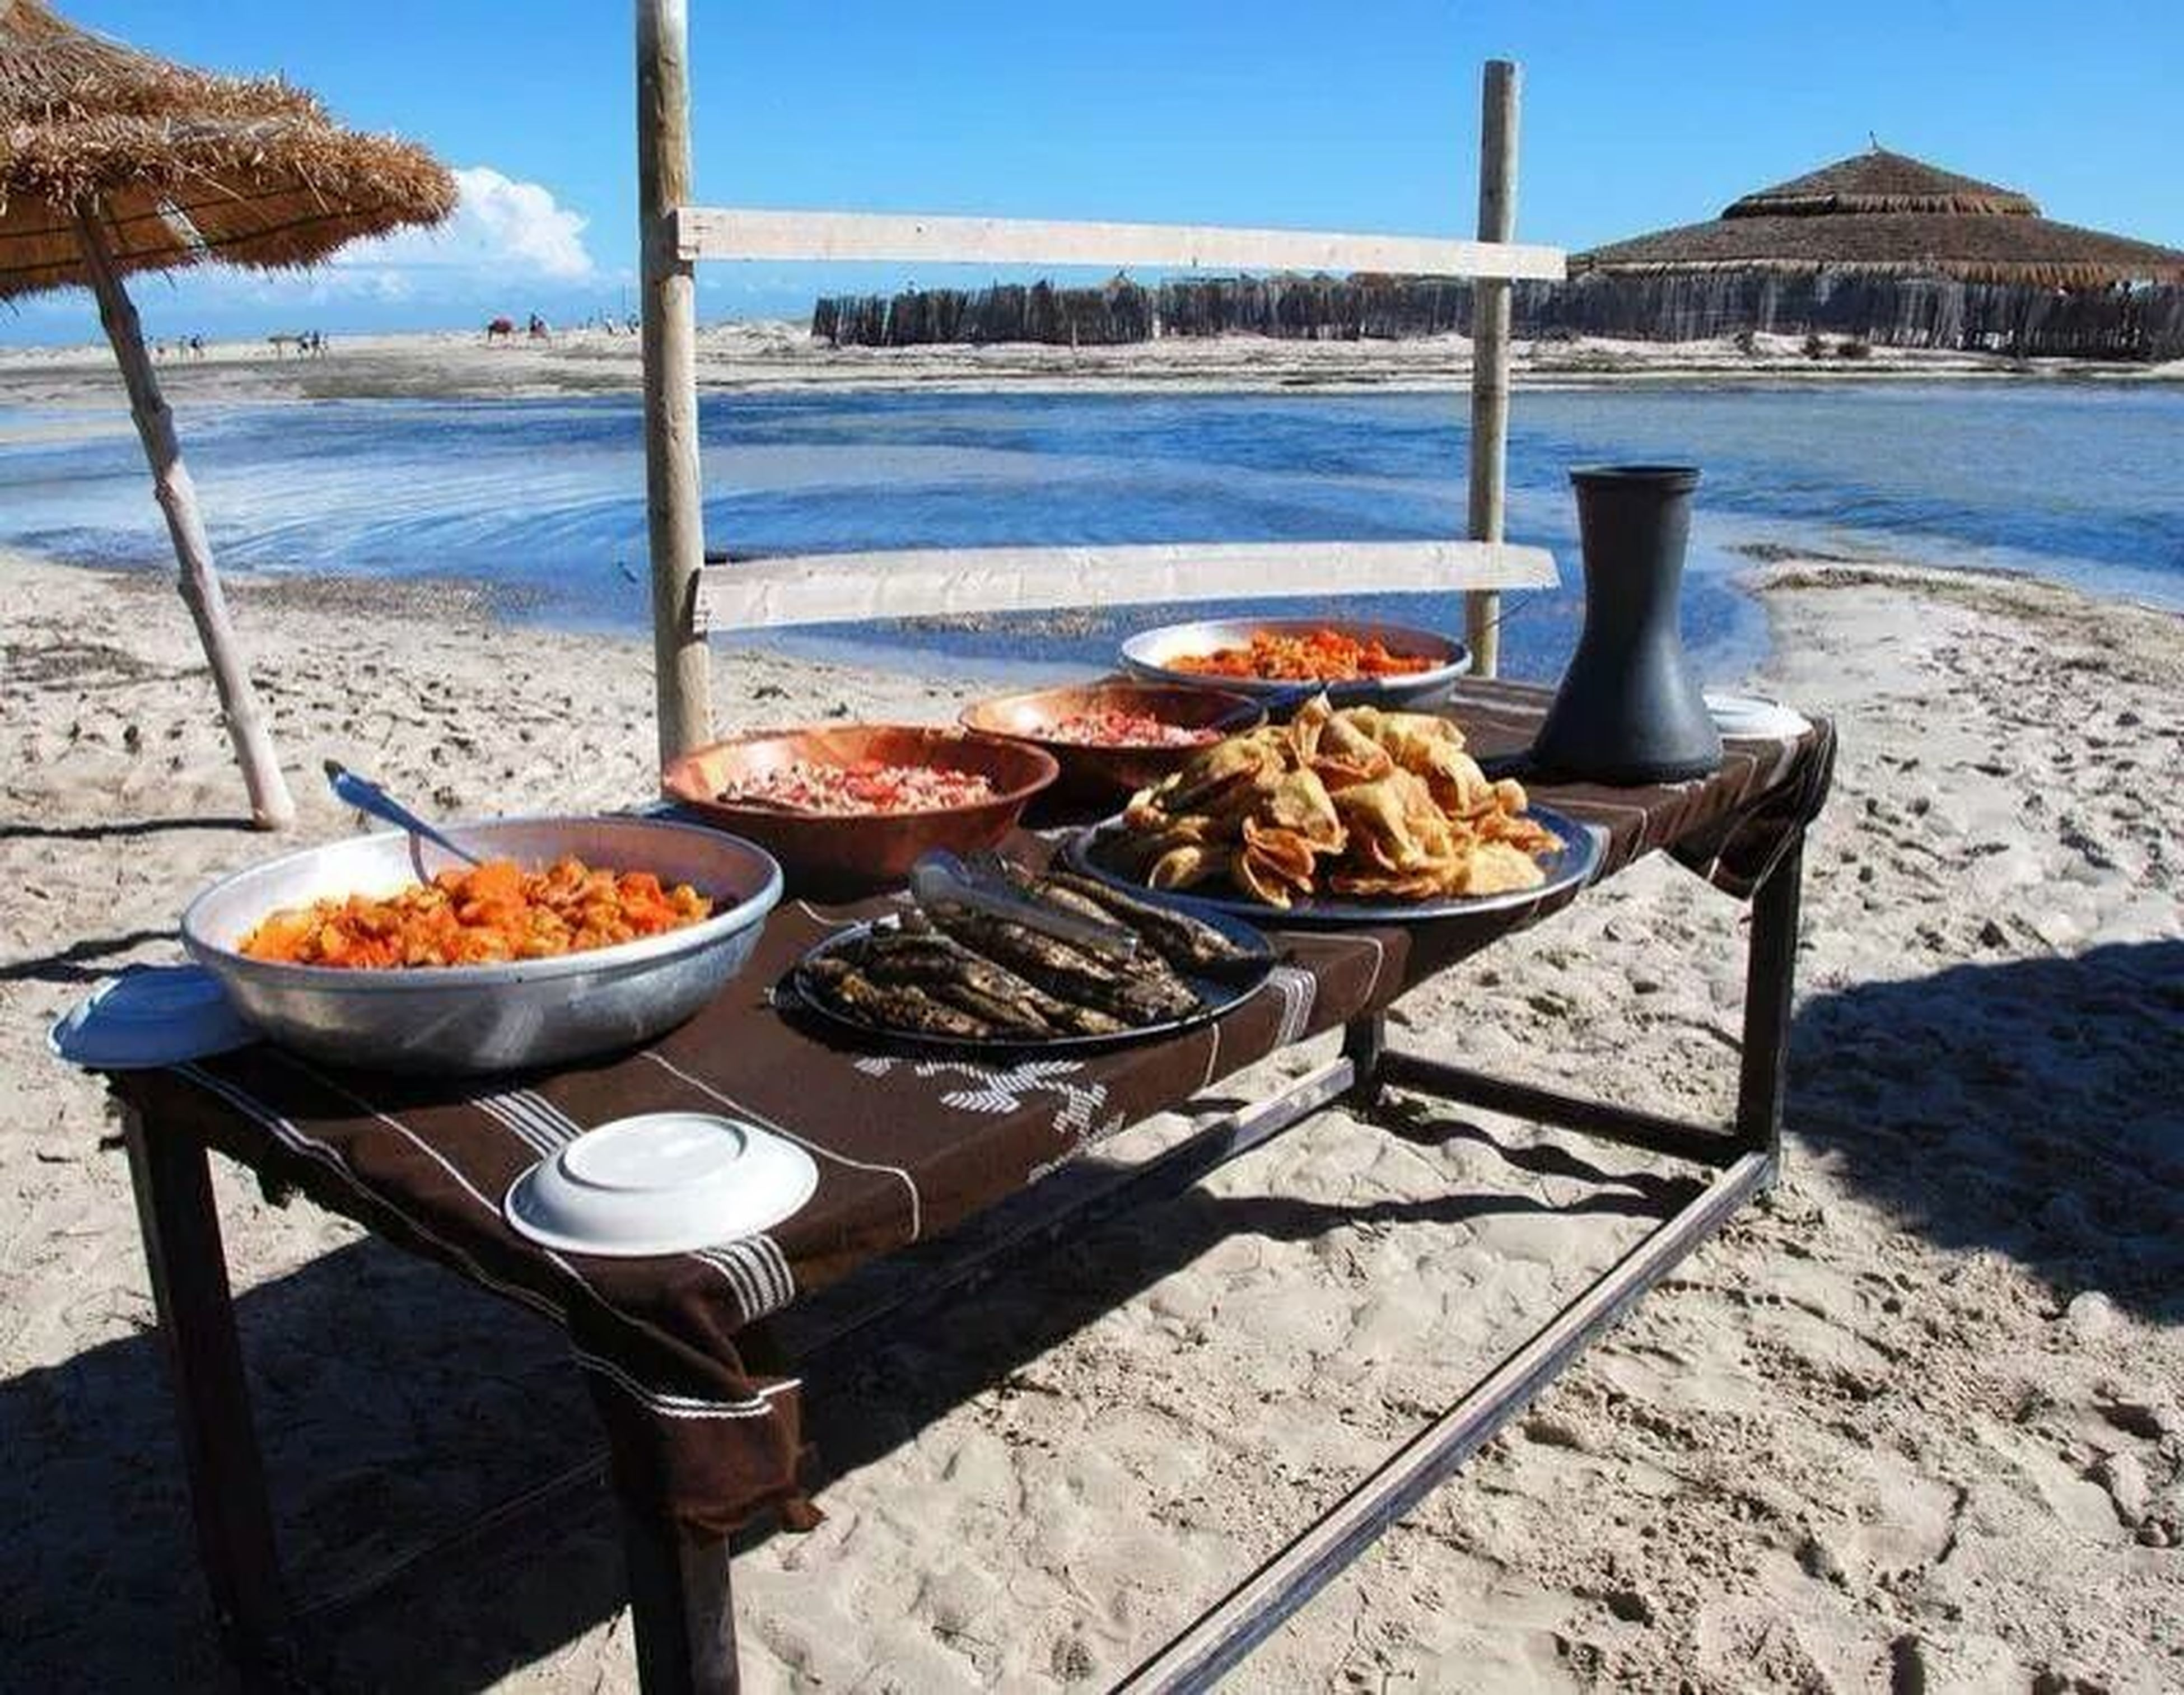 sea, table, beach, sunlight, food and drink, chair, water, shadow, clear sky, shore, day, food, outdoors, sunny, absence, sky, wood - material, railing, restaurant, nature